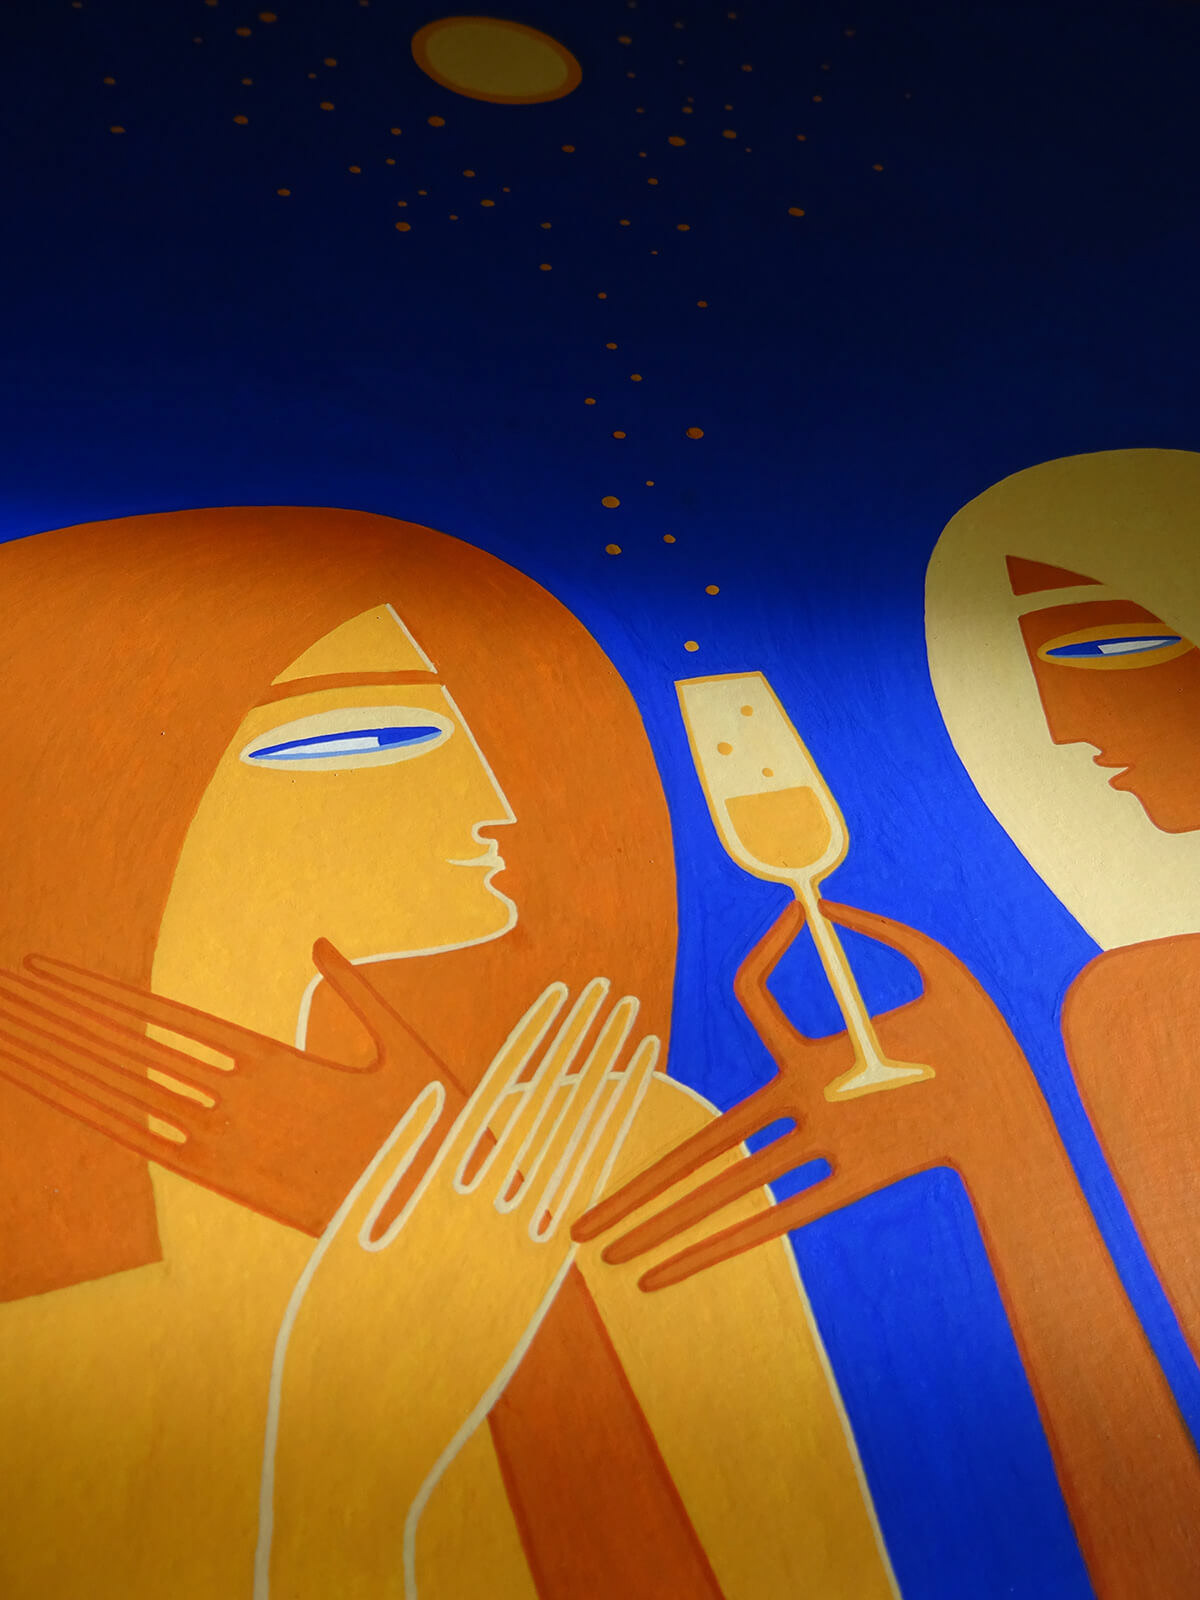 Glass of Champagne ILLUSTRATION  kv Love night event nocturnal painting   Poetry  poster Prosecco